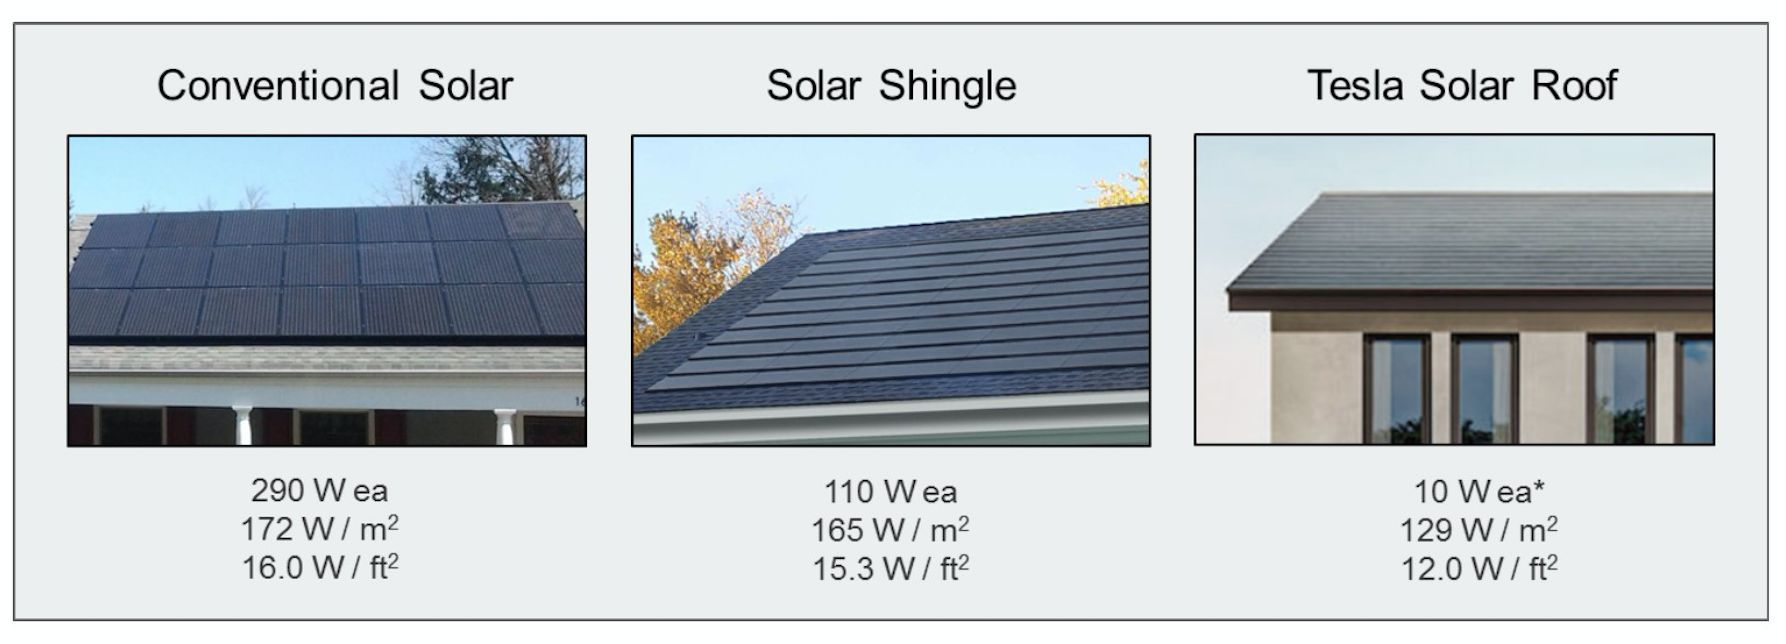 Tesla solar roof Yahoo Image Search Results